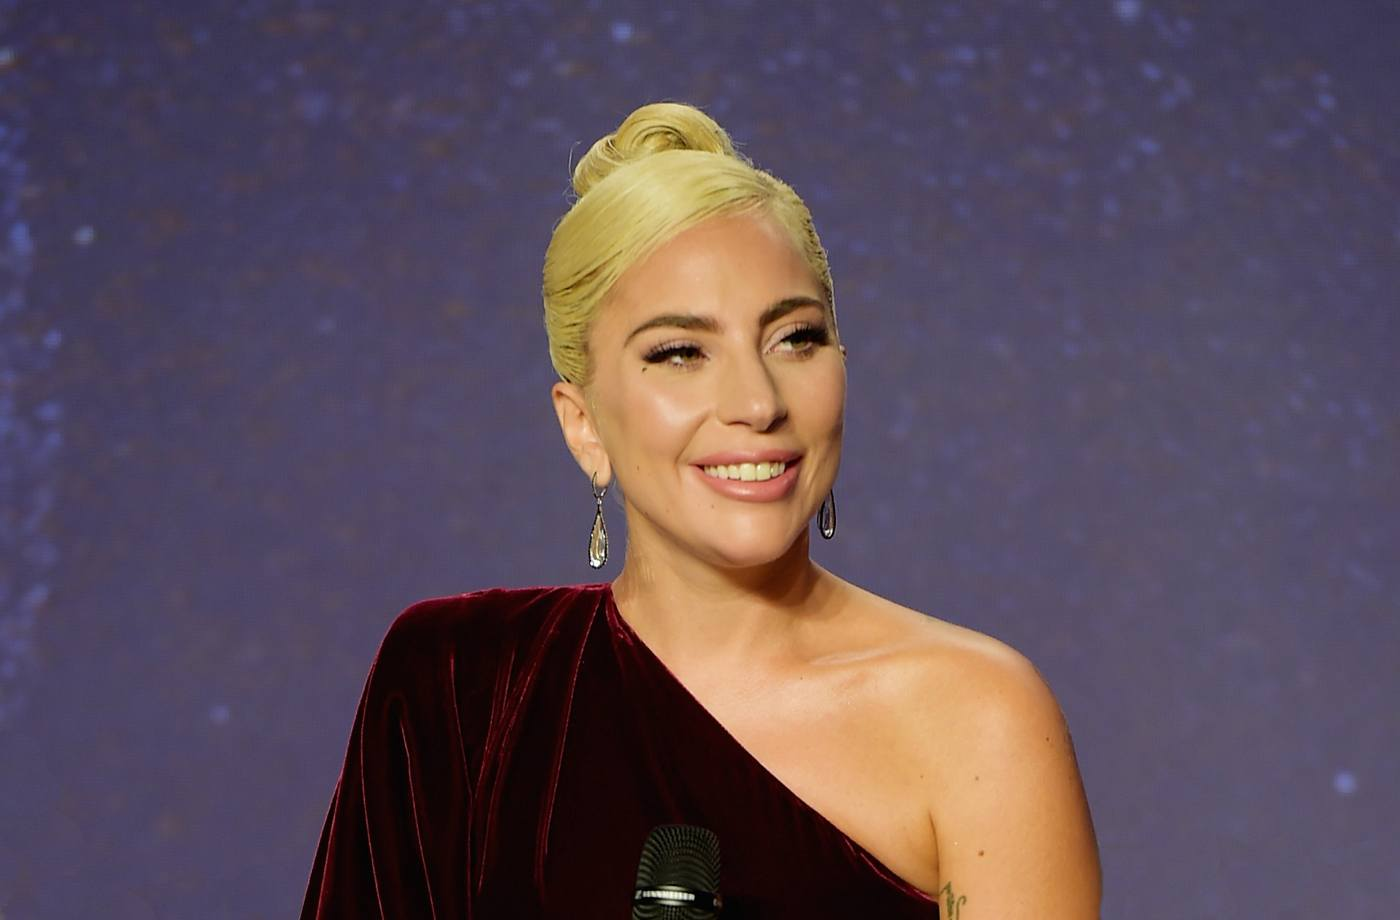 Thumbnail for 5 Times Lady Gaga Proved Her Healthy Star Was Born *Long* Ago